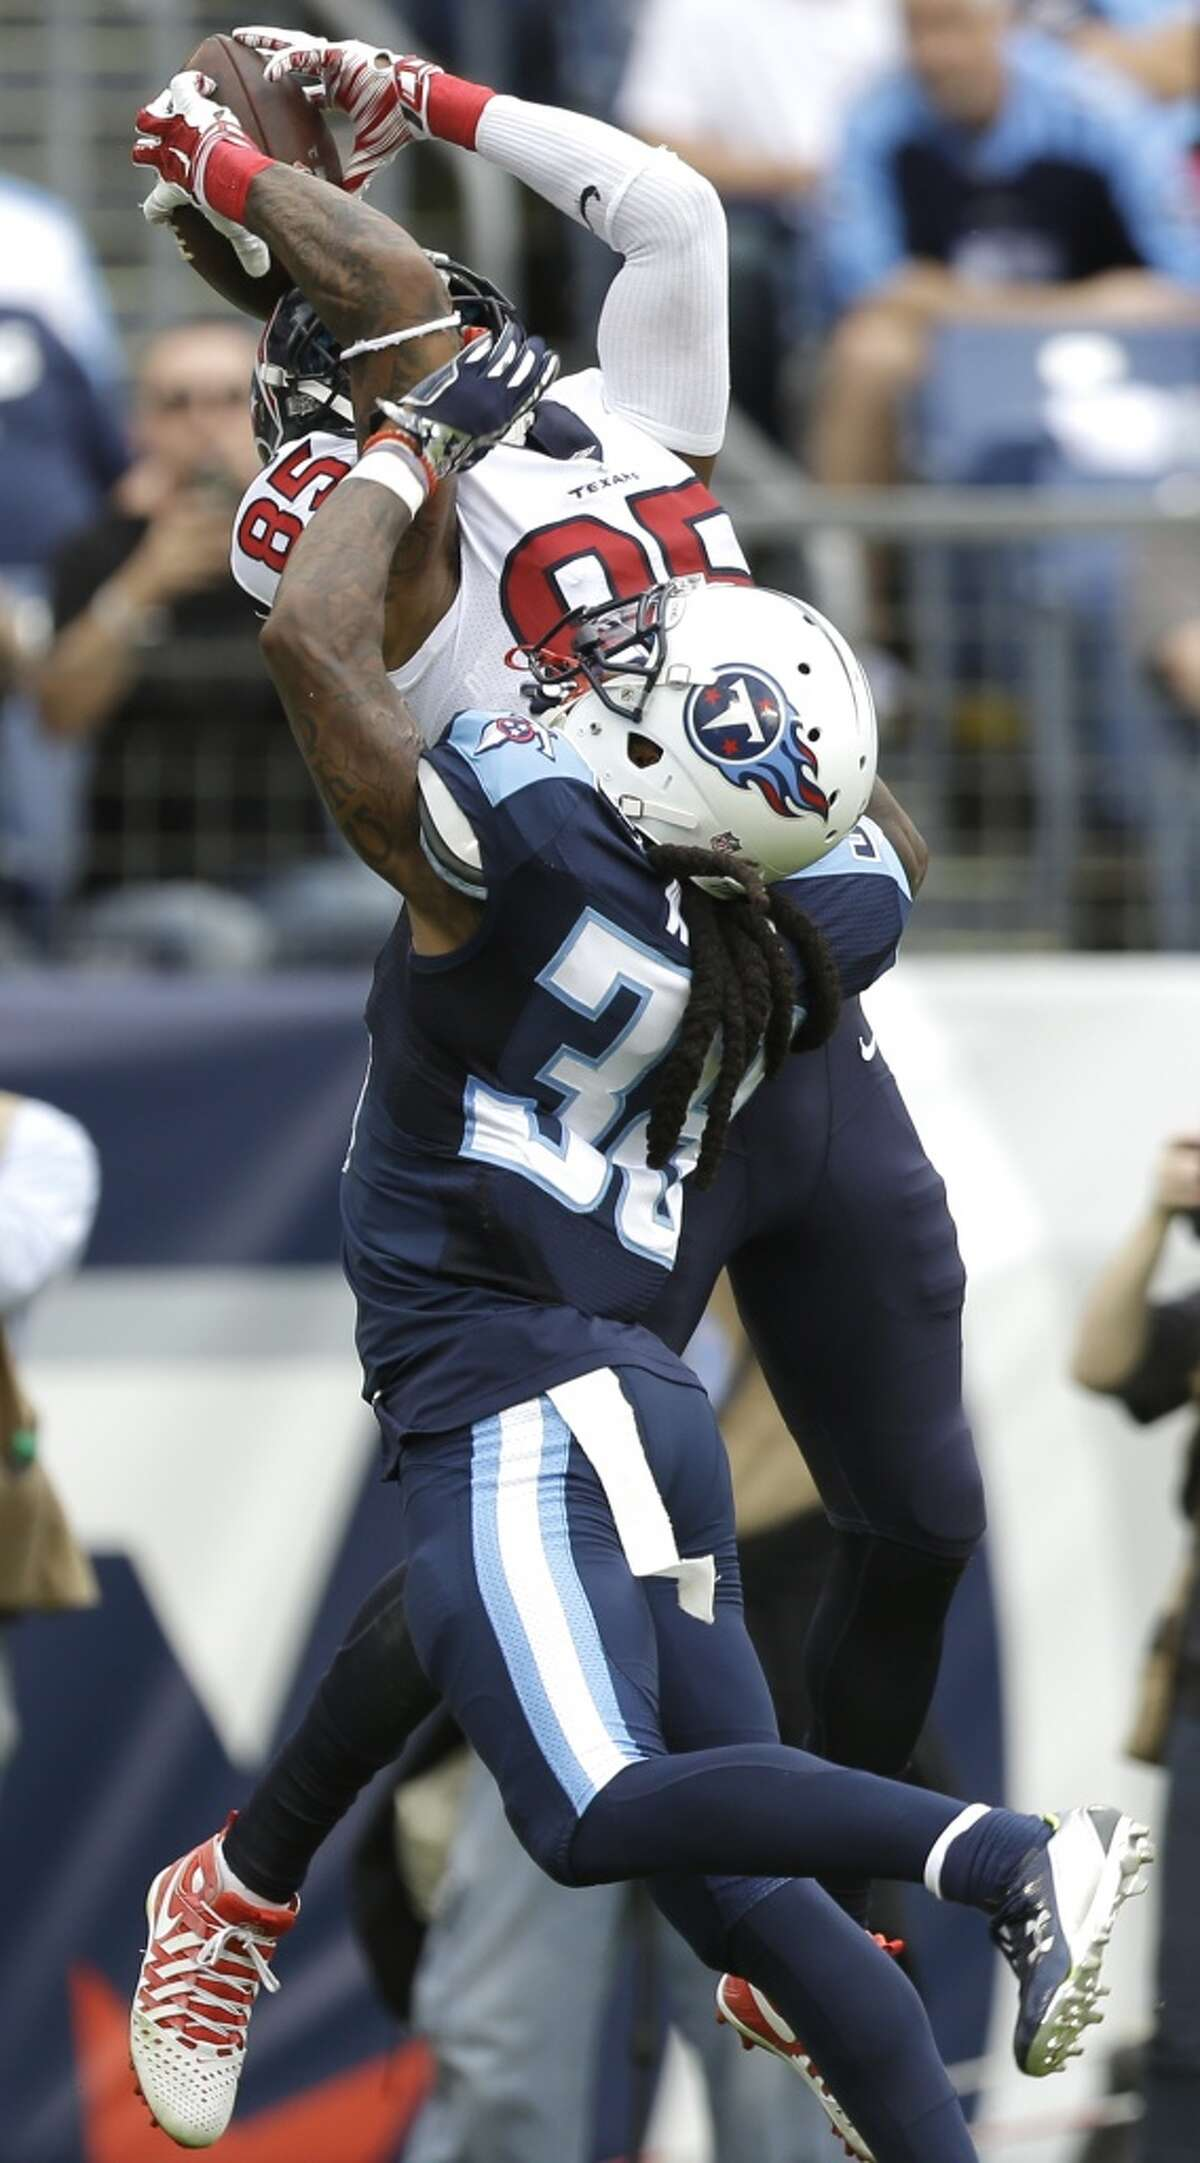 Houston Texans wide receiver Nate Washington (85) goes up over Tennessee Titans defensive back B.W. Webb (38) for a 13-yard touchdown reception during the third quarter of an NFL football game at Nissan Stadium on Sunday, Dec. 27, 2015, in Nashville. ( Brett Coomer / Houston Chronicle )